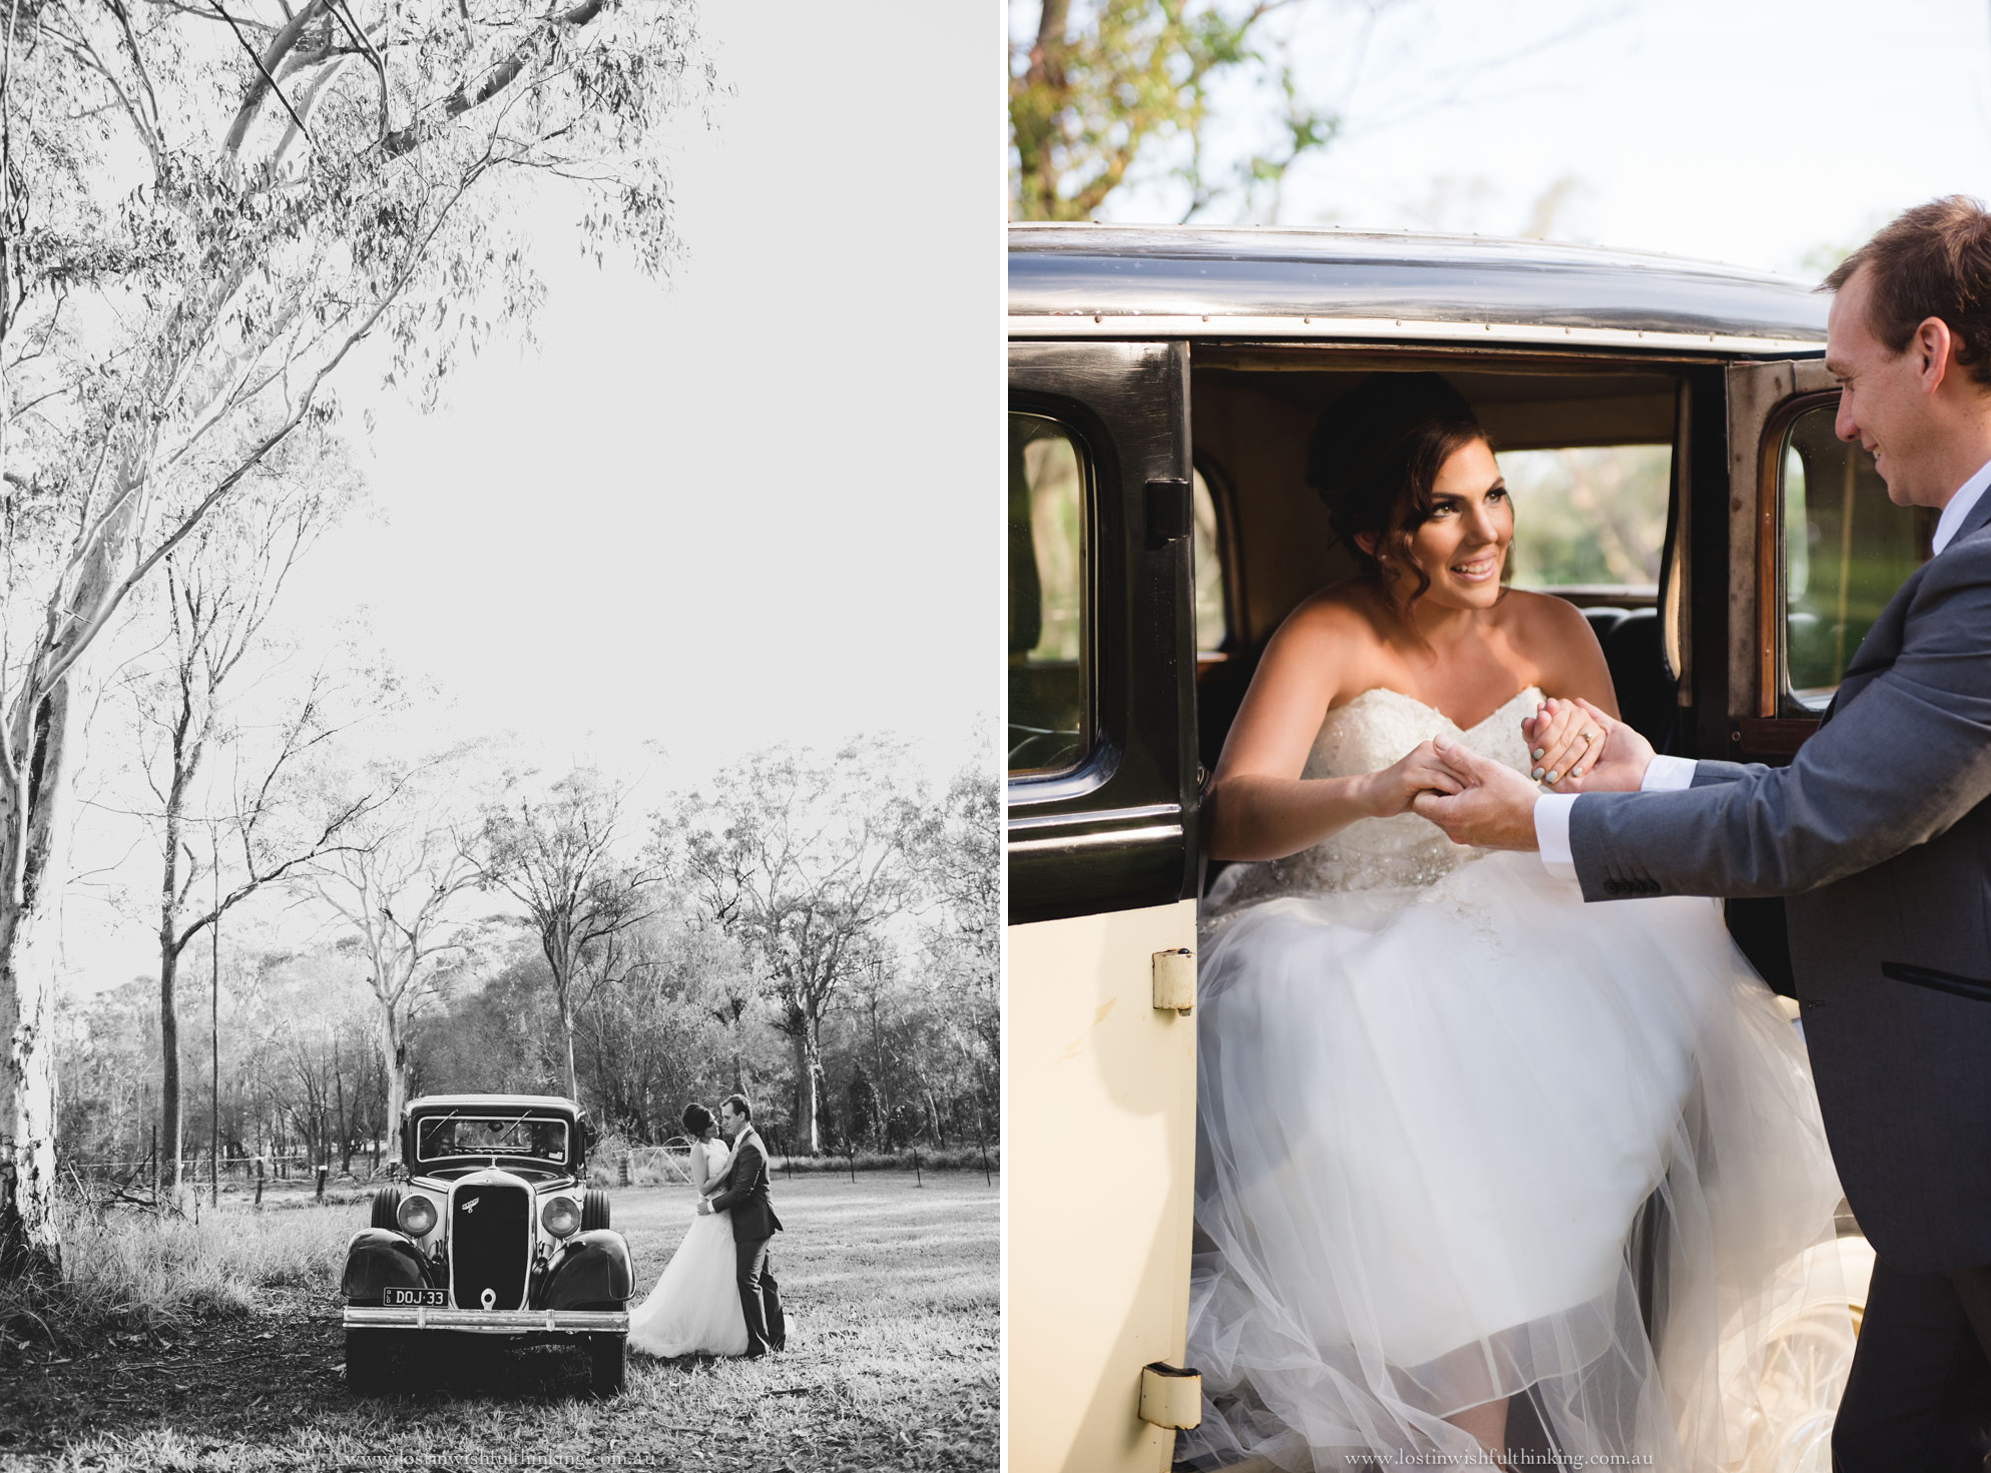 WEB-hannahmccawley-rachelle&murray-reshoot-sunsetwedding-diptych1